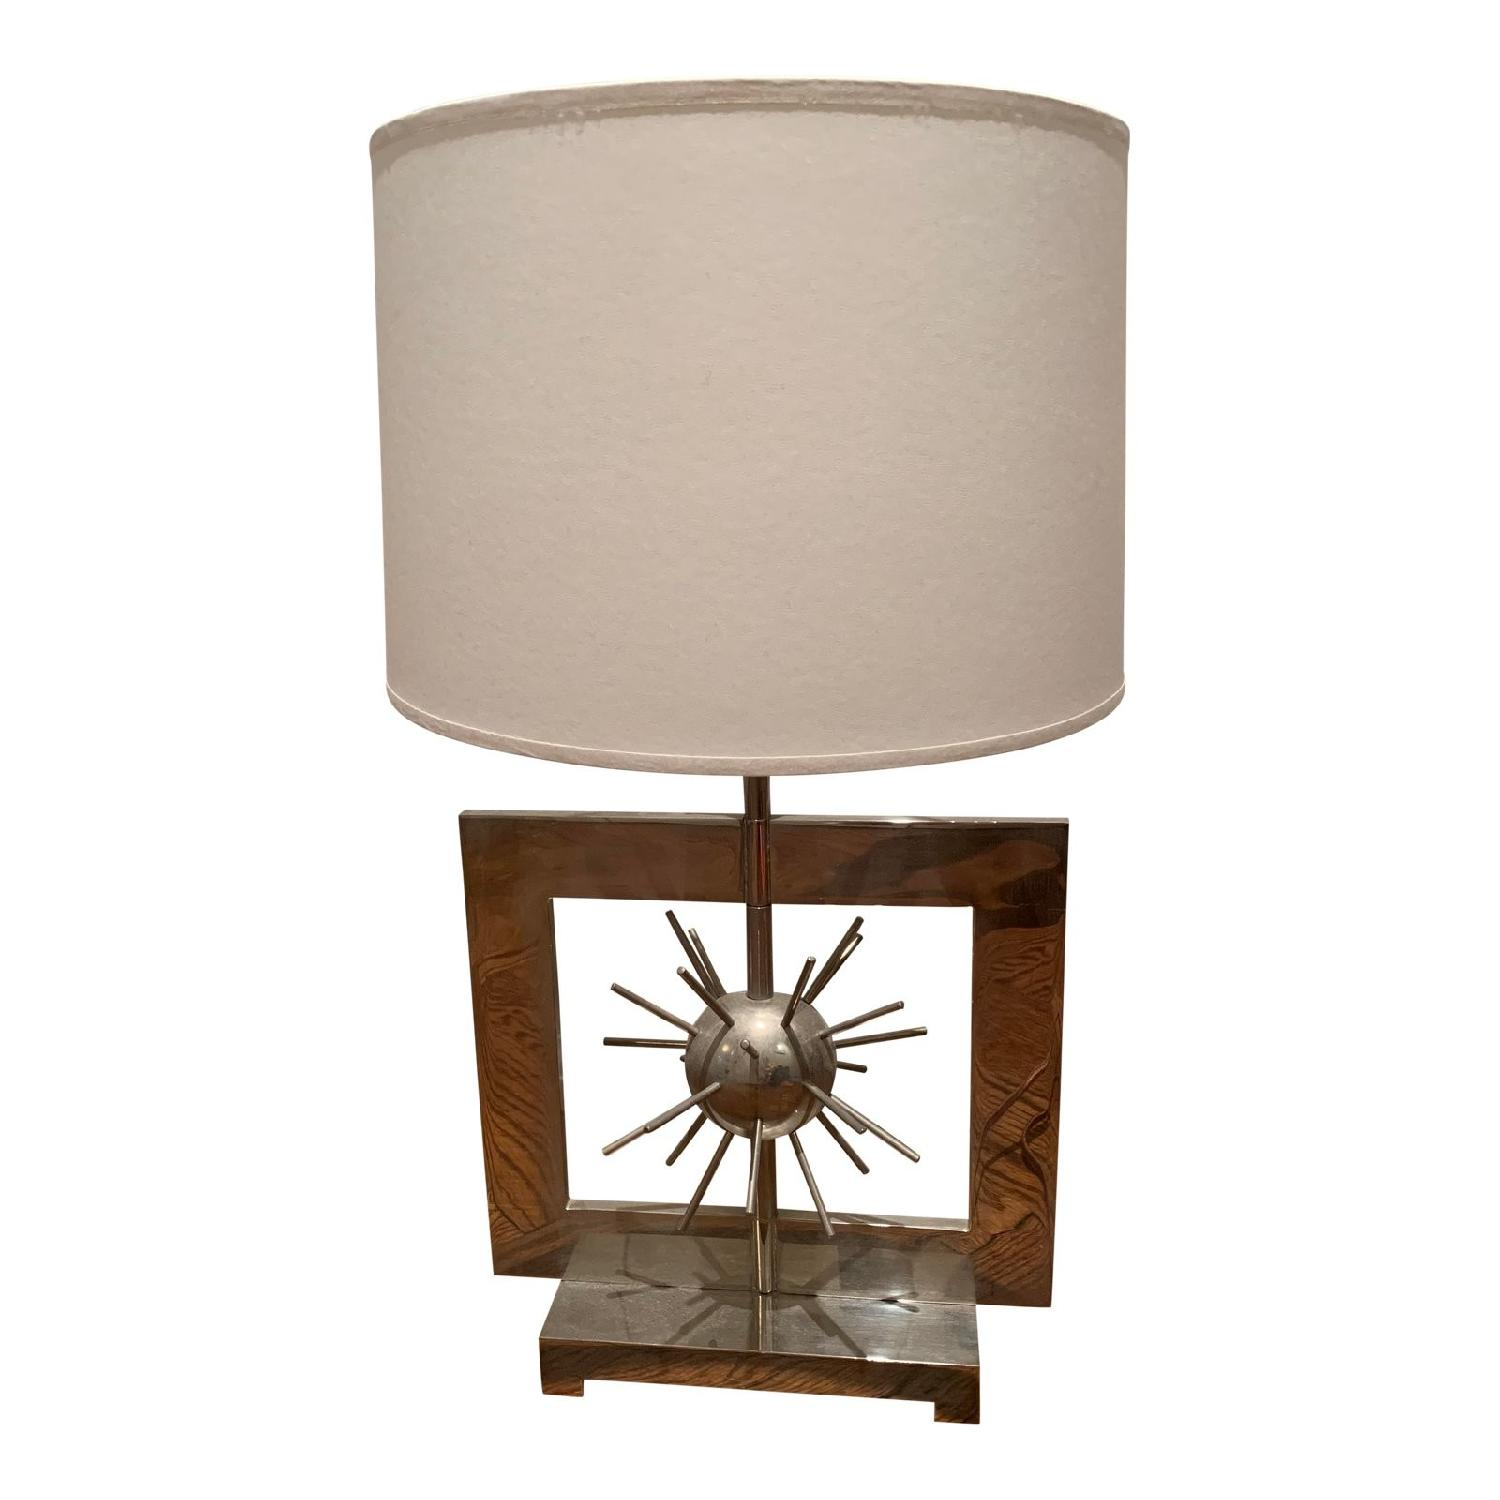 Spiked Accent Table Lamp